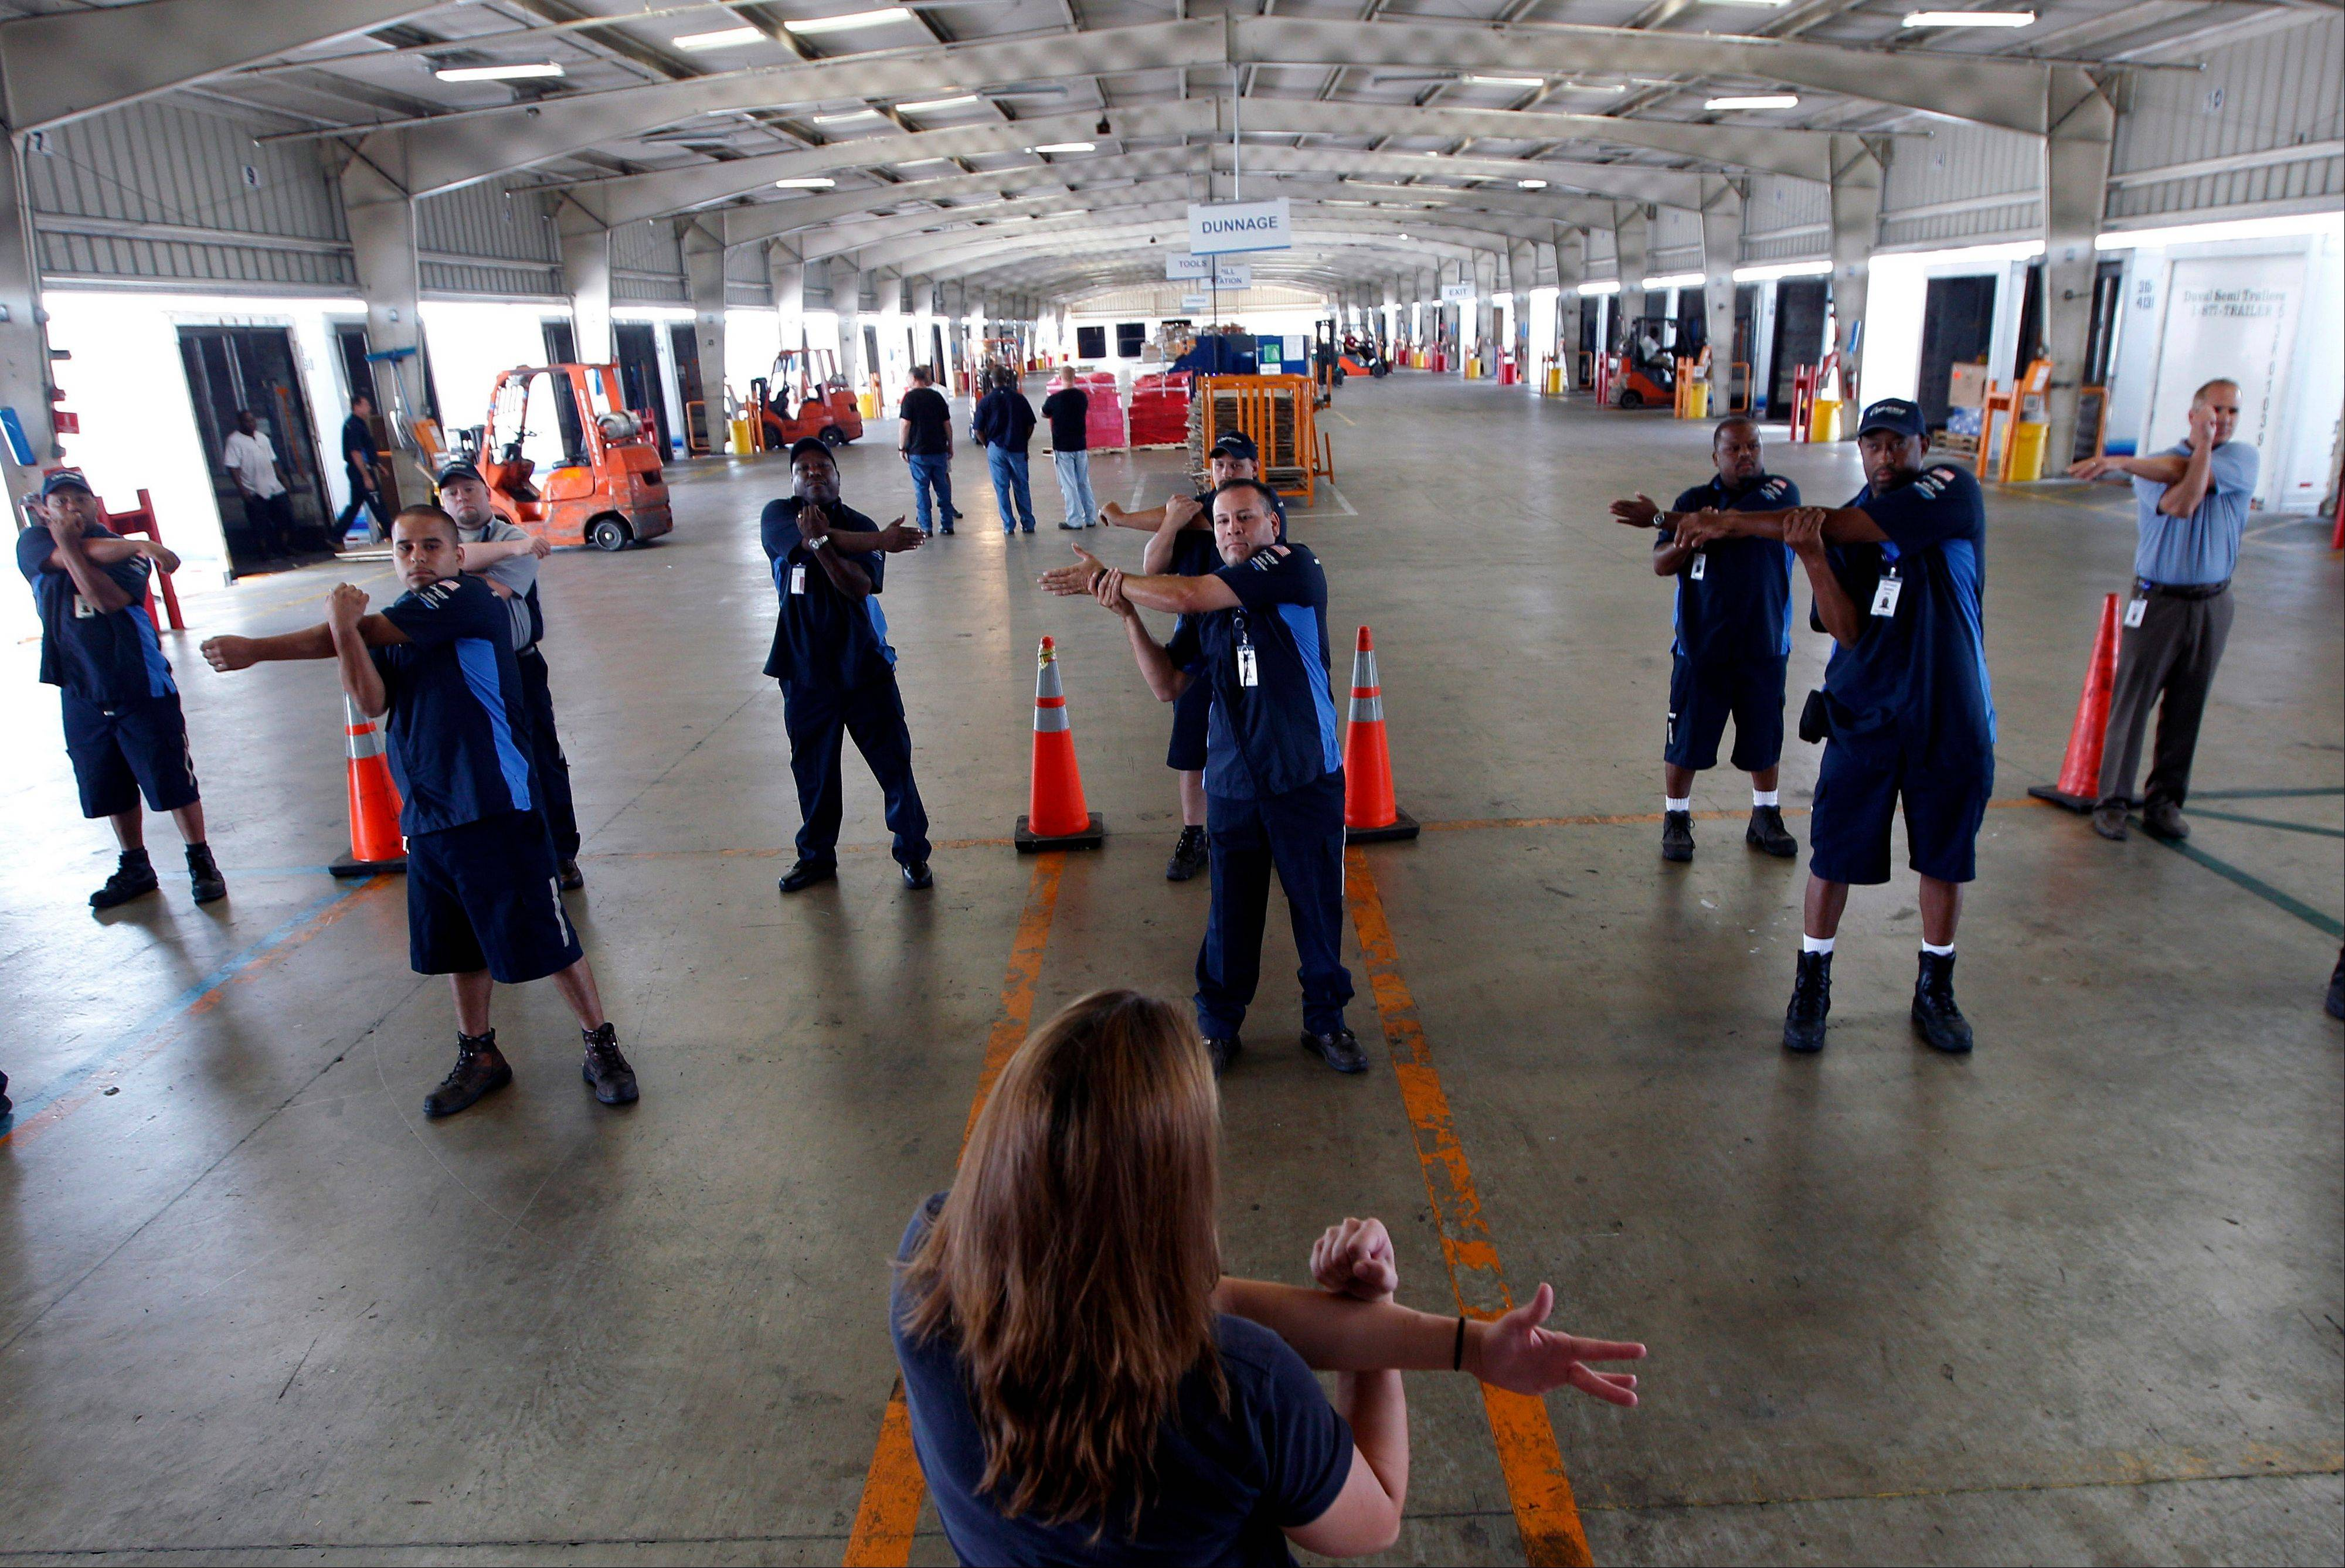 Wellness coach Kara Whitcomb leads truckers in a stretching regime before their driving shifts start at Con-way Freight in Garland, Texas.